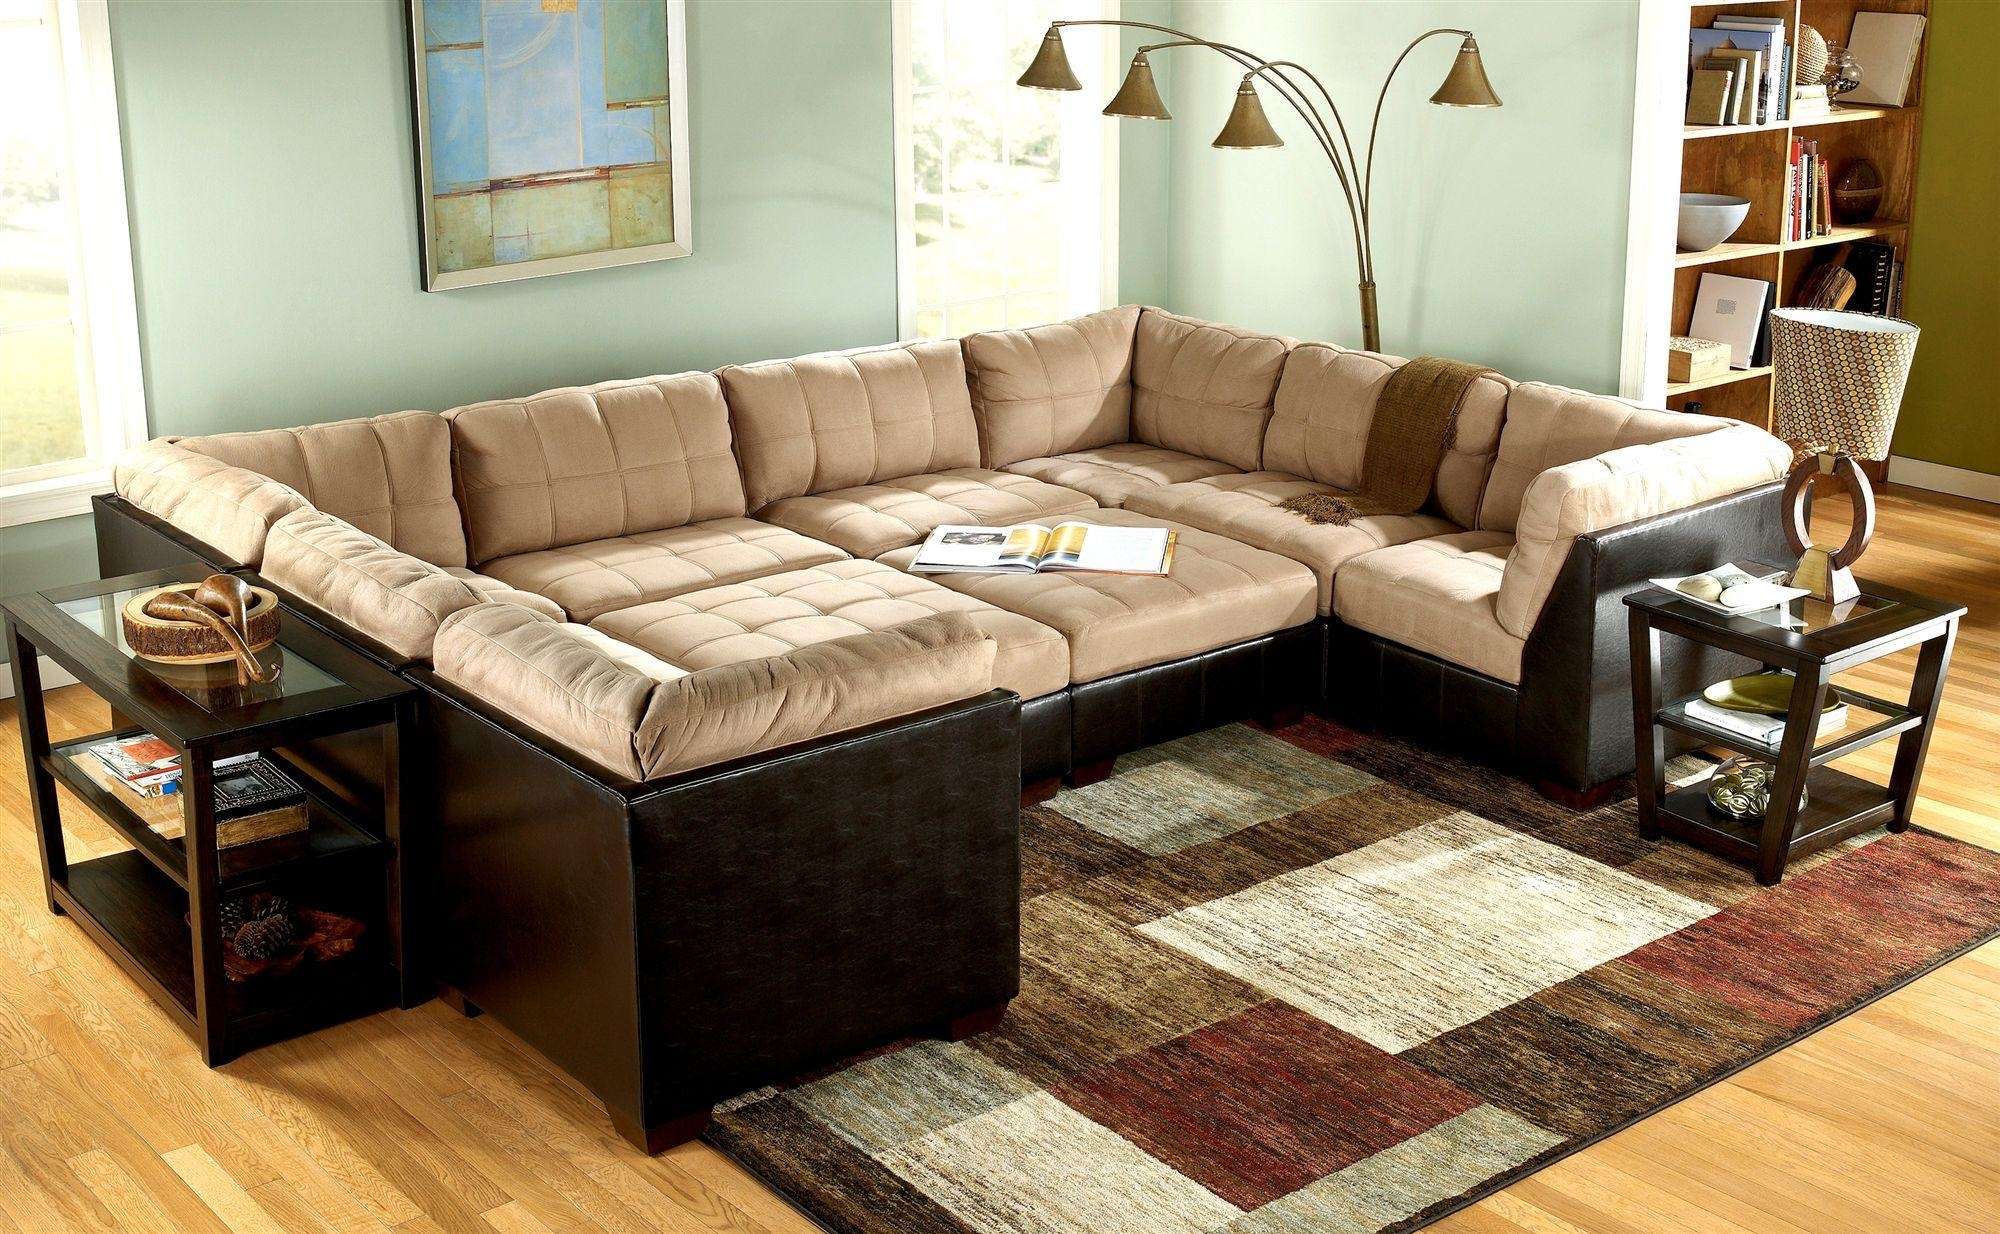 Sofas Center : Buyal Sofa Individual Piecesbuy Las Vegasbuy Inside Individual Piece Sectional Sofas (Image 14 of 20)